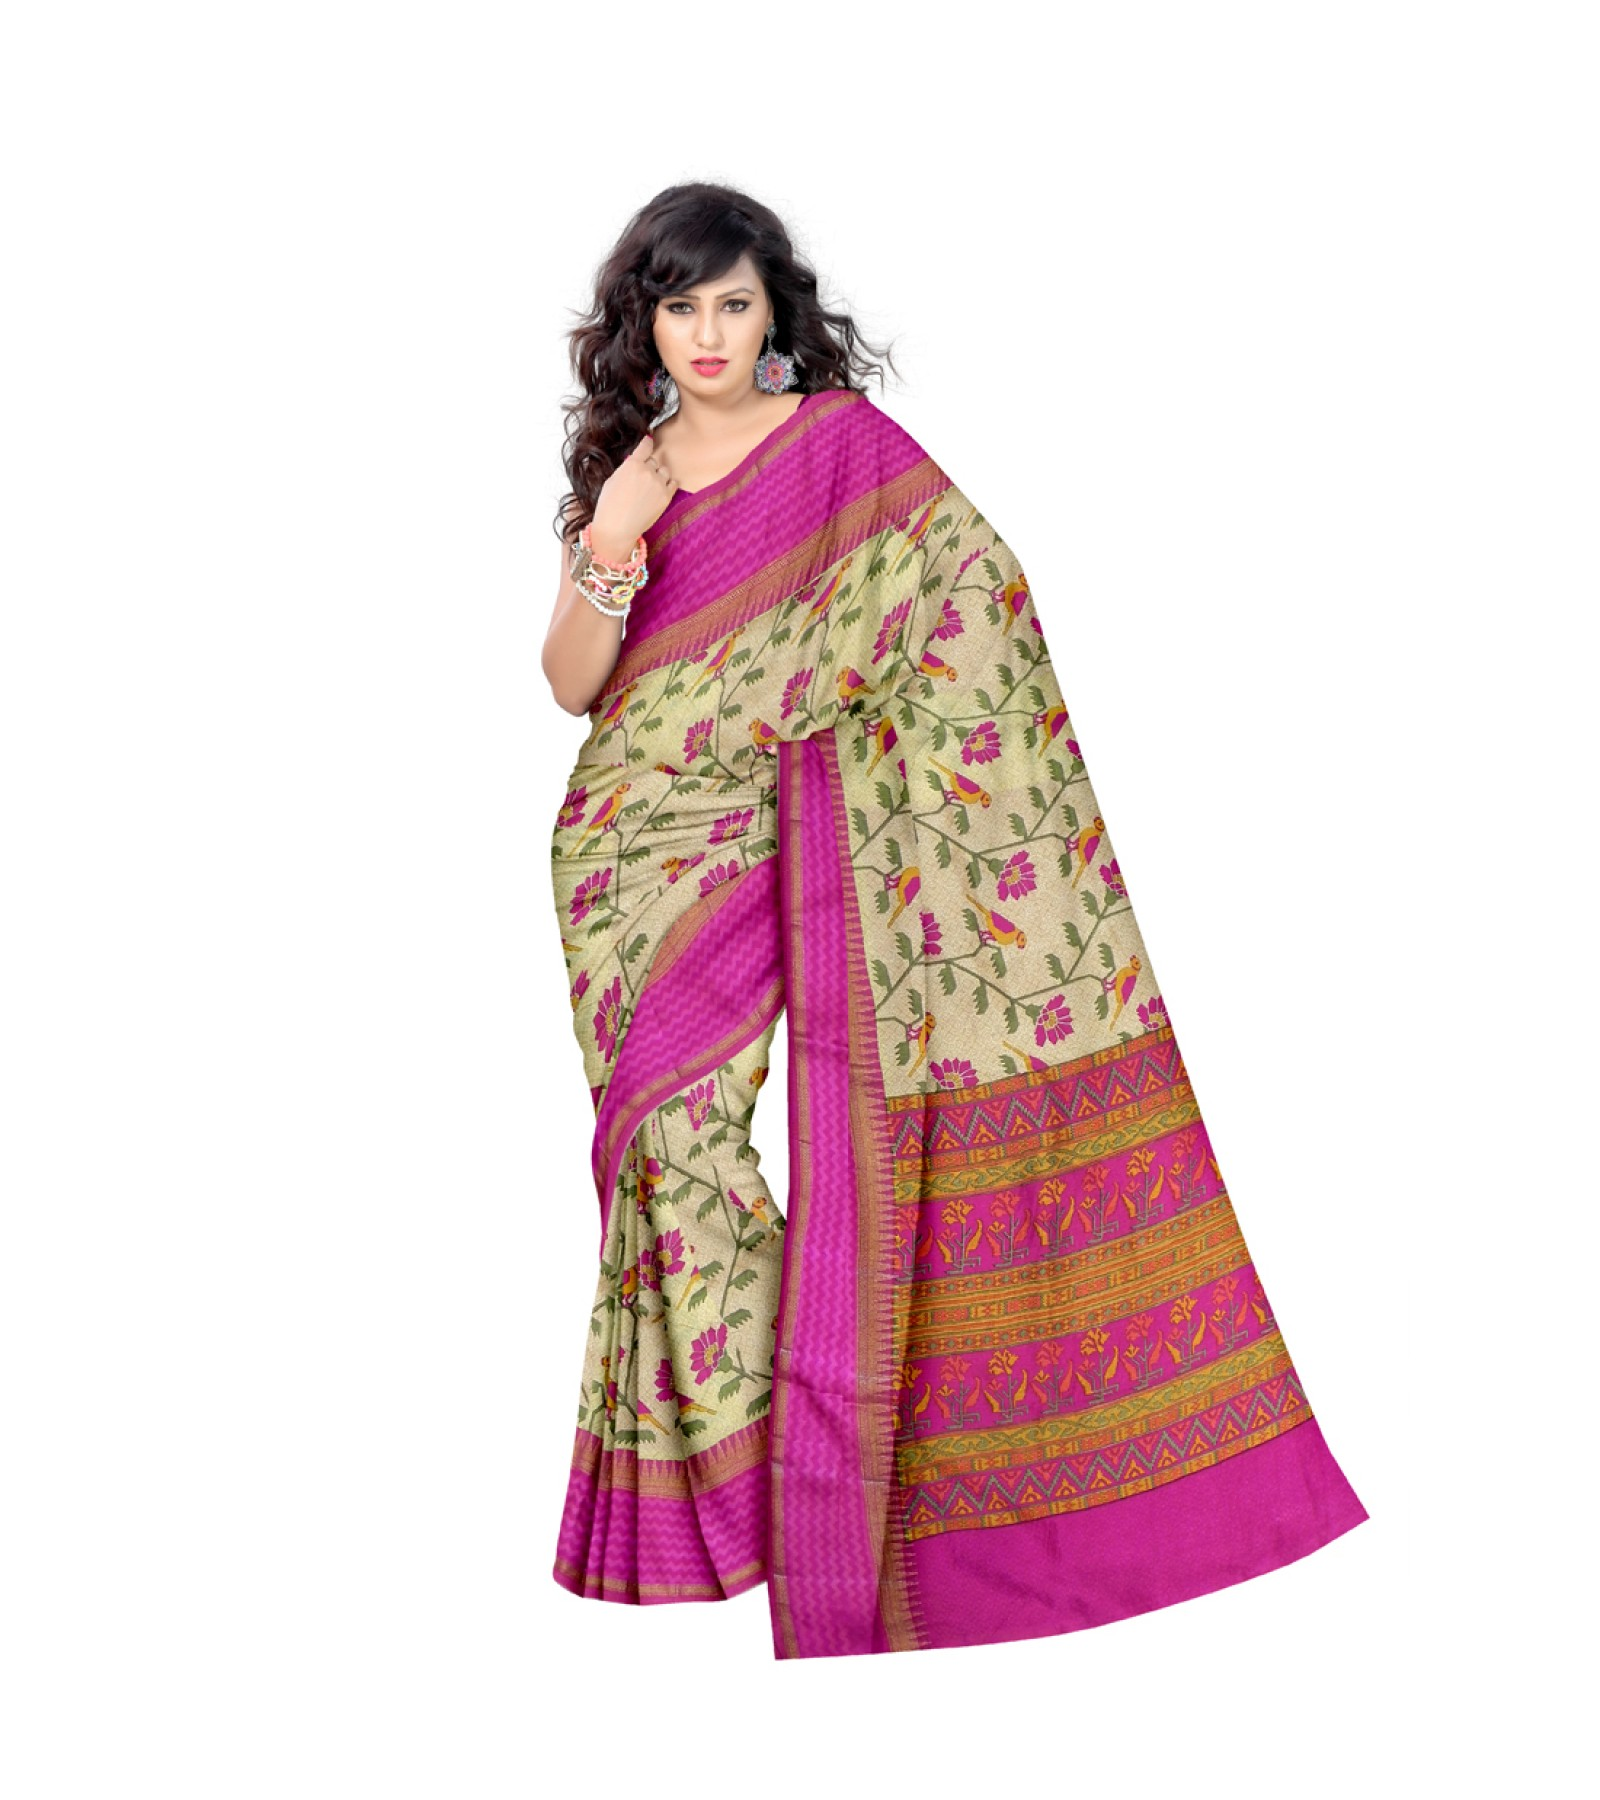 Fancy Jute Saree Pink